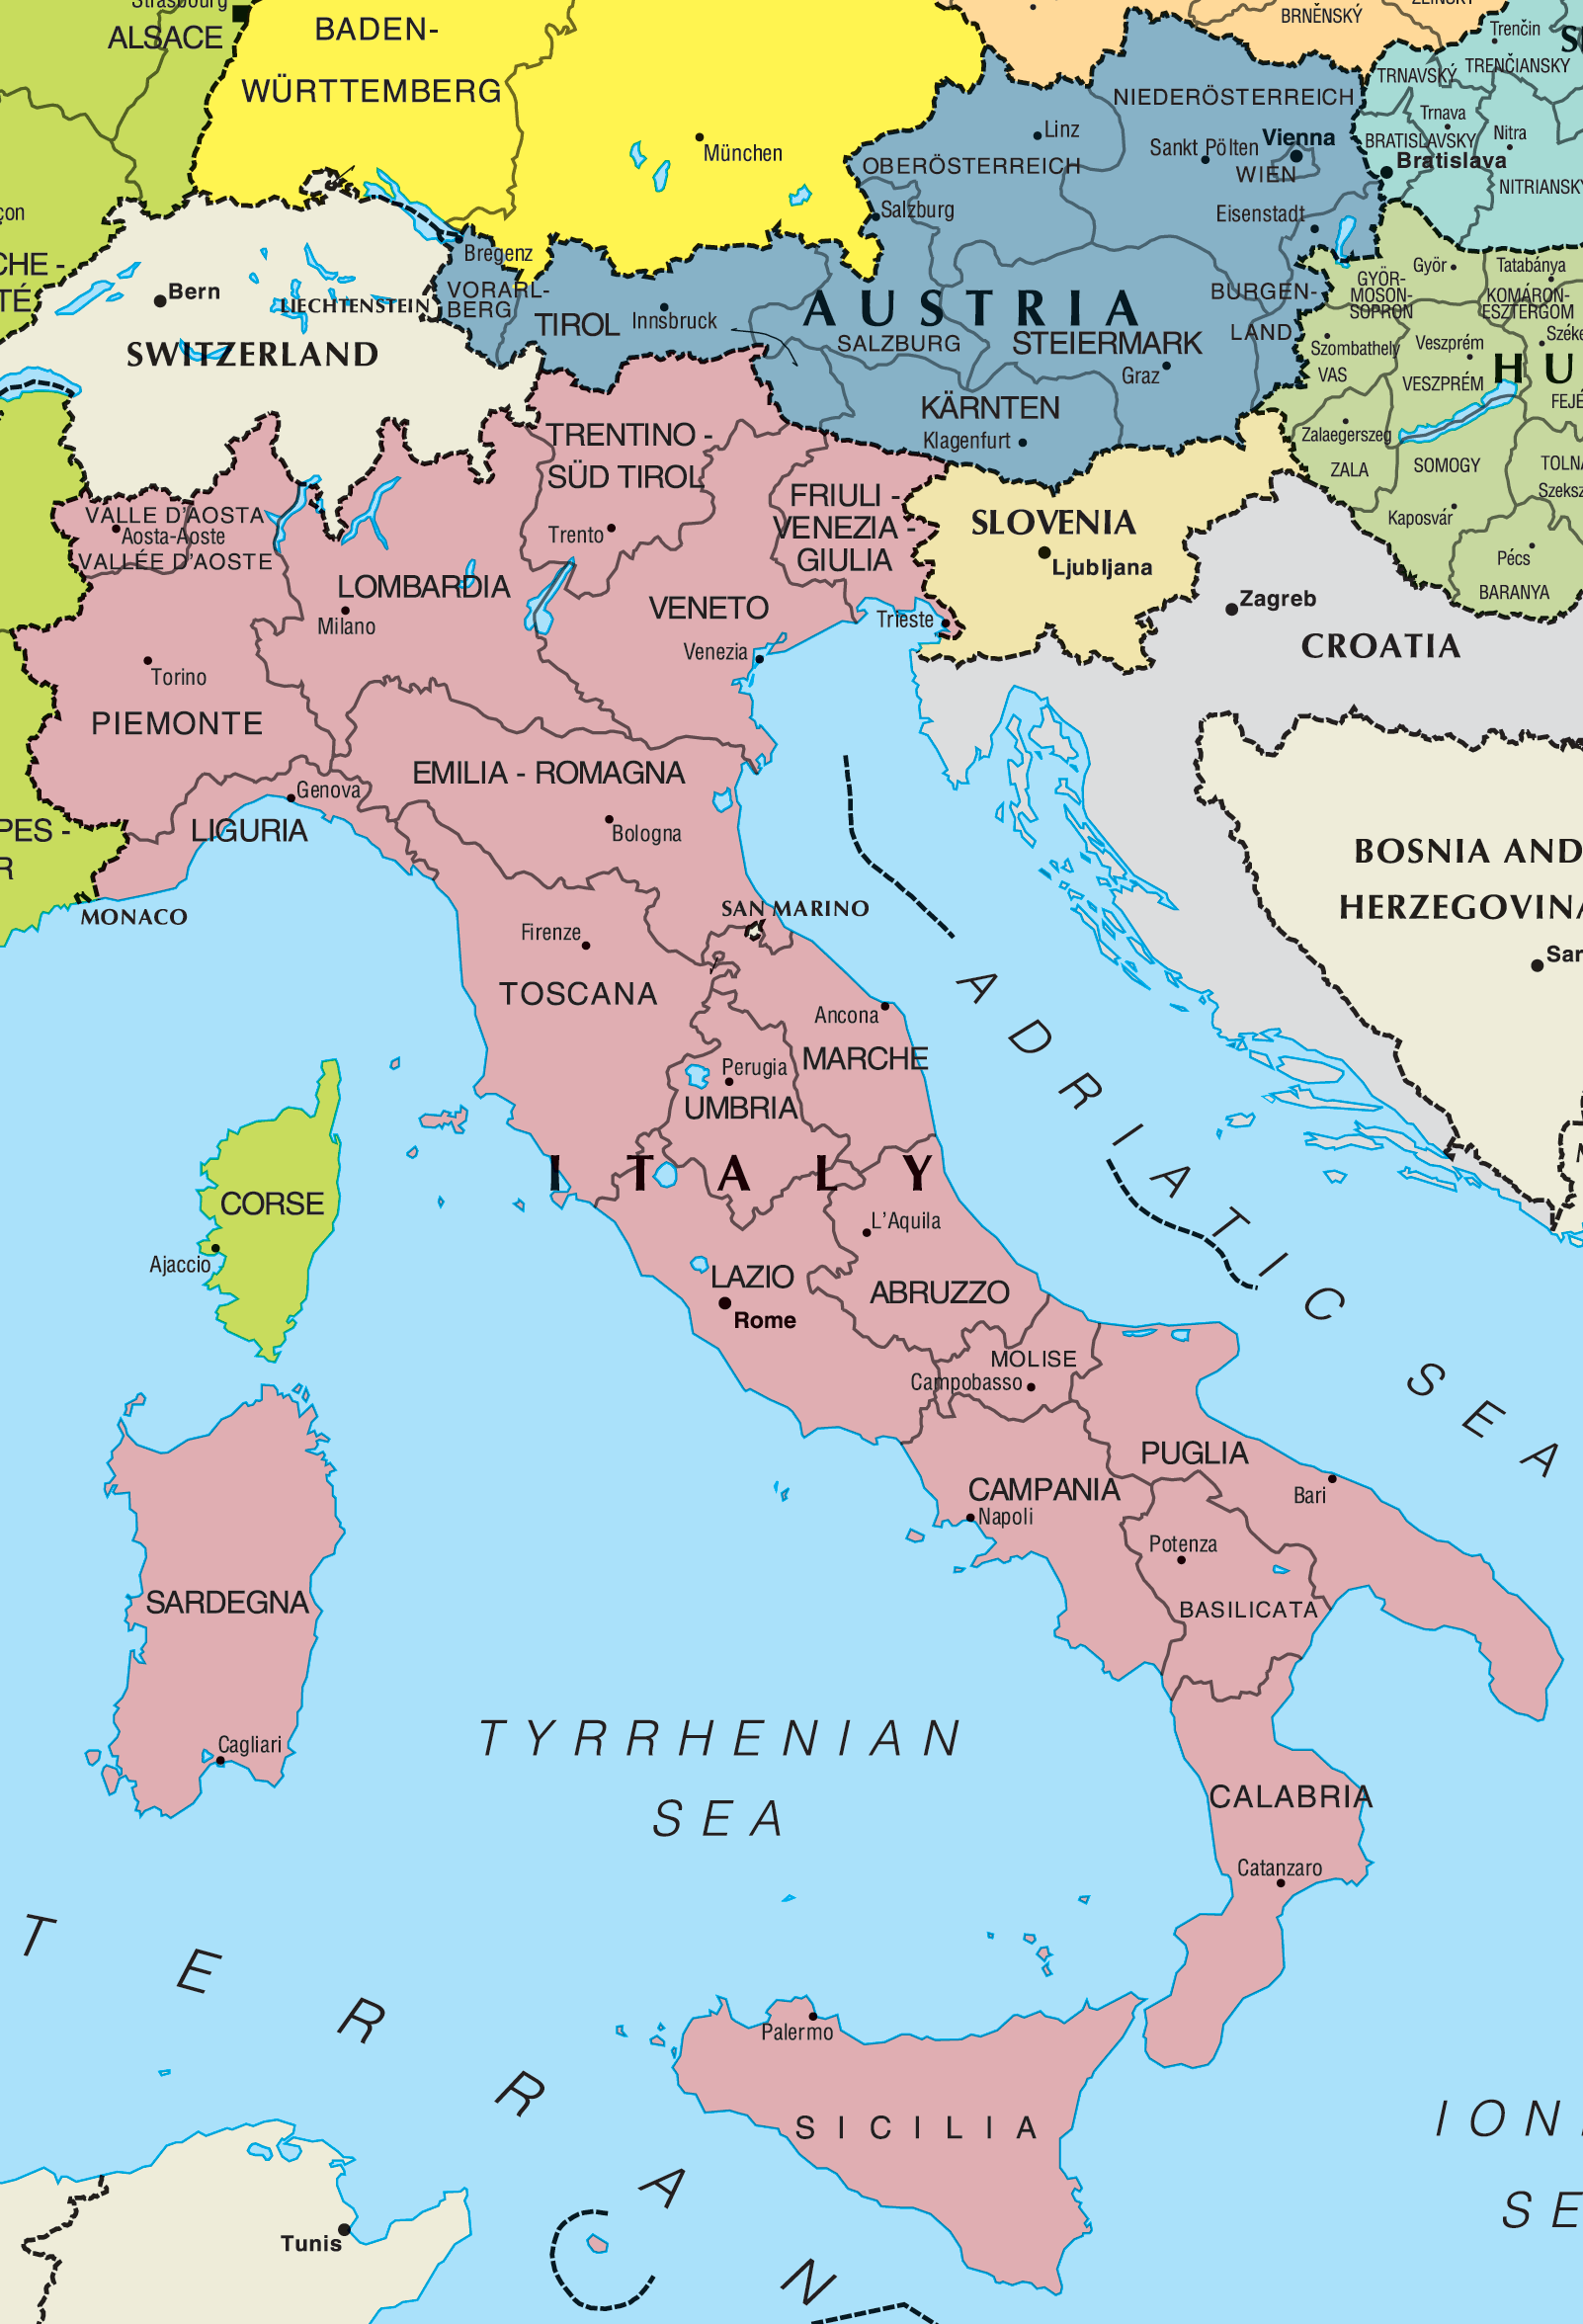 Map Of Austria And Italy Italy And Austria Map • Mapsof.net